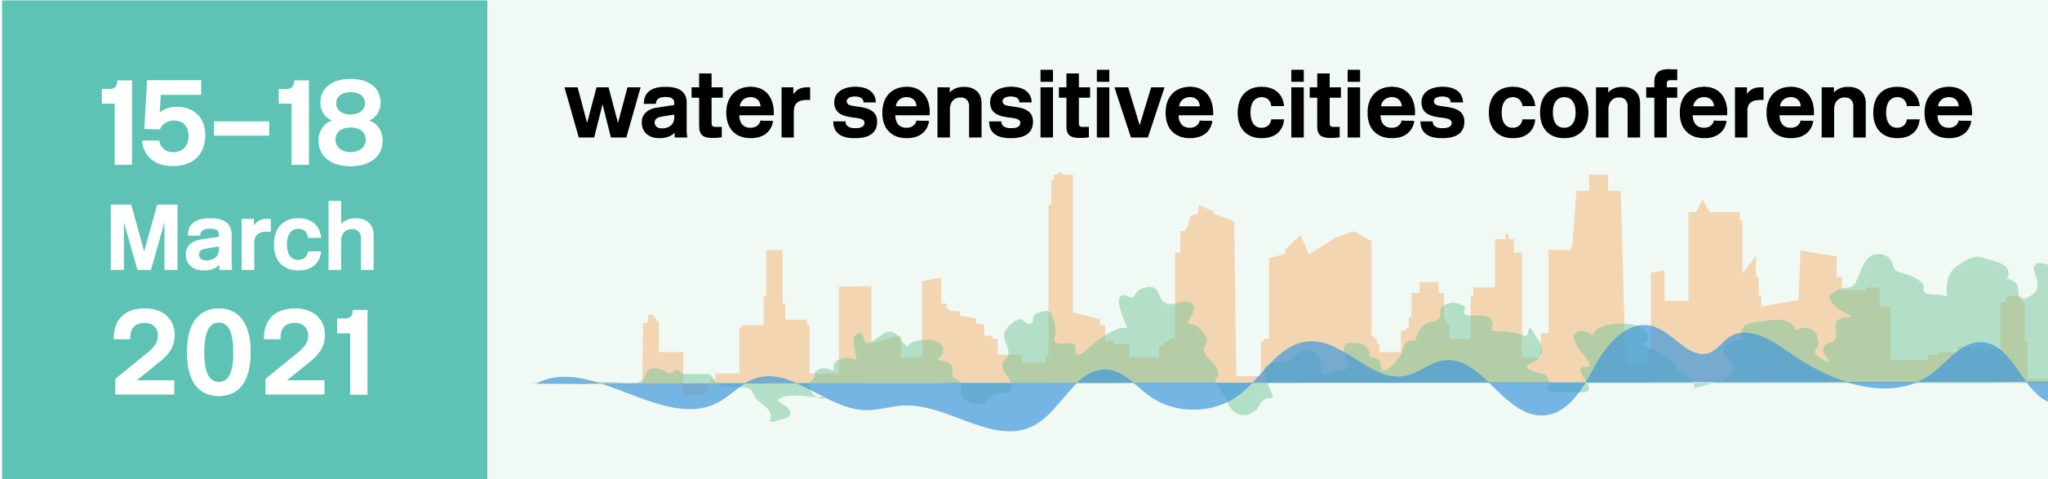 5th CRC for Water Sensitive Cities conference - 15-18 March 2021